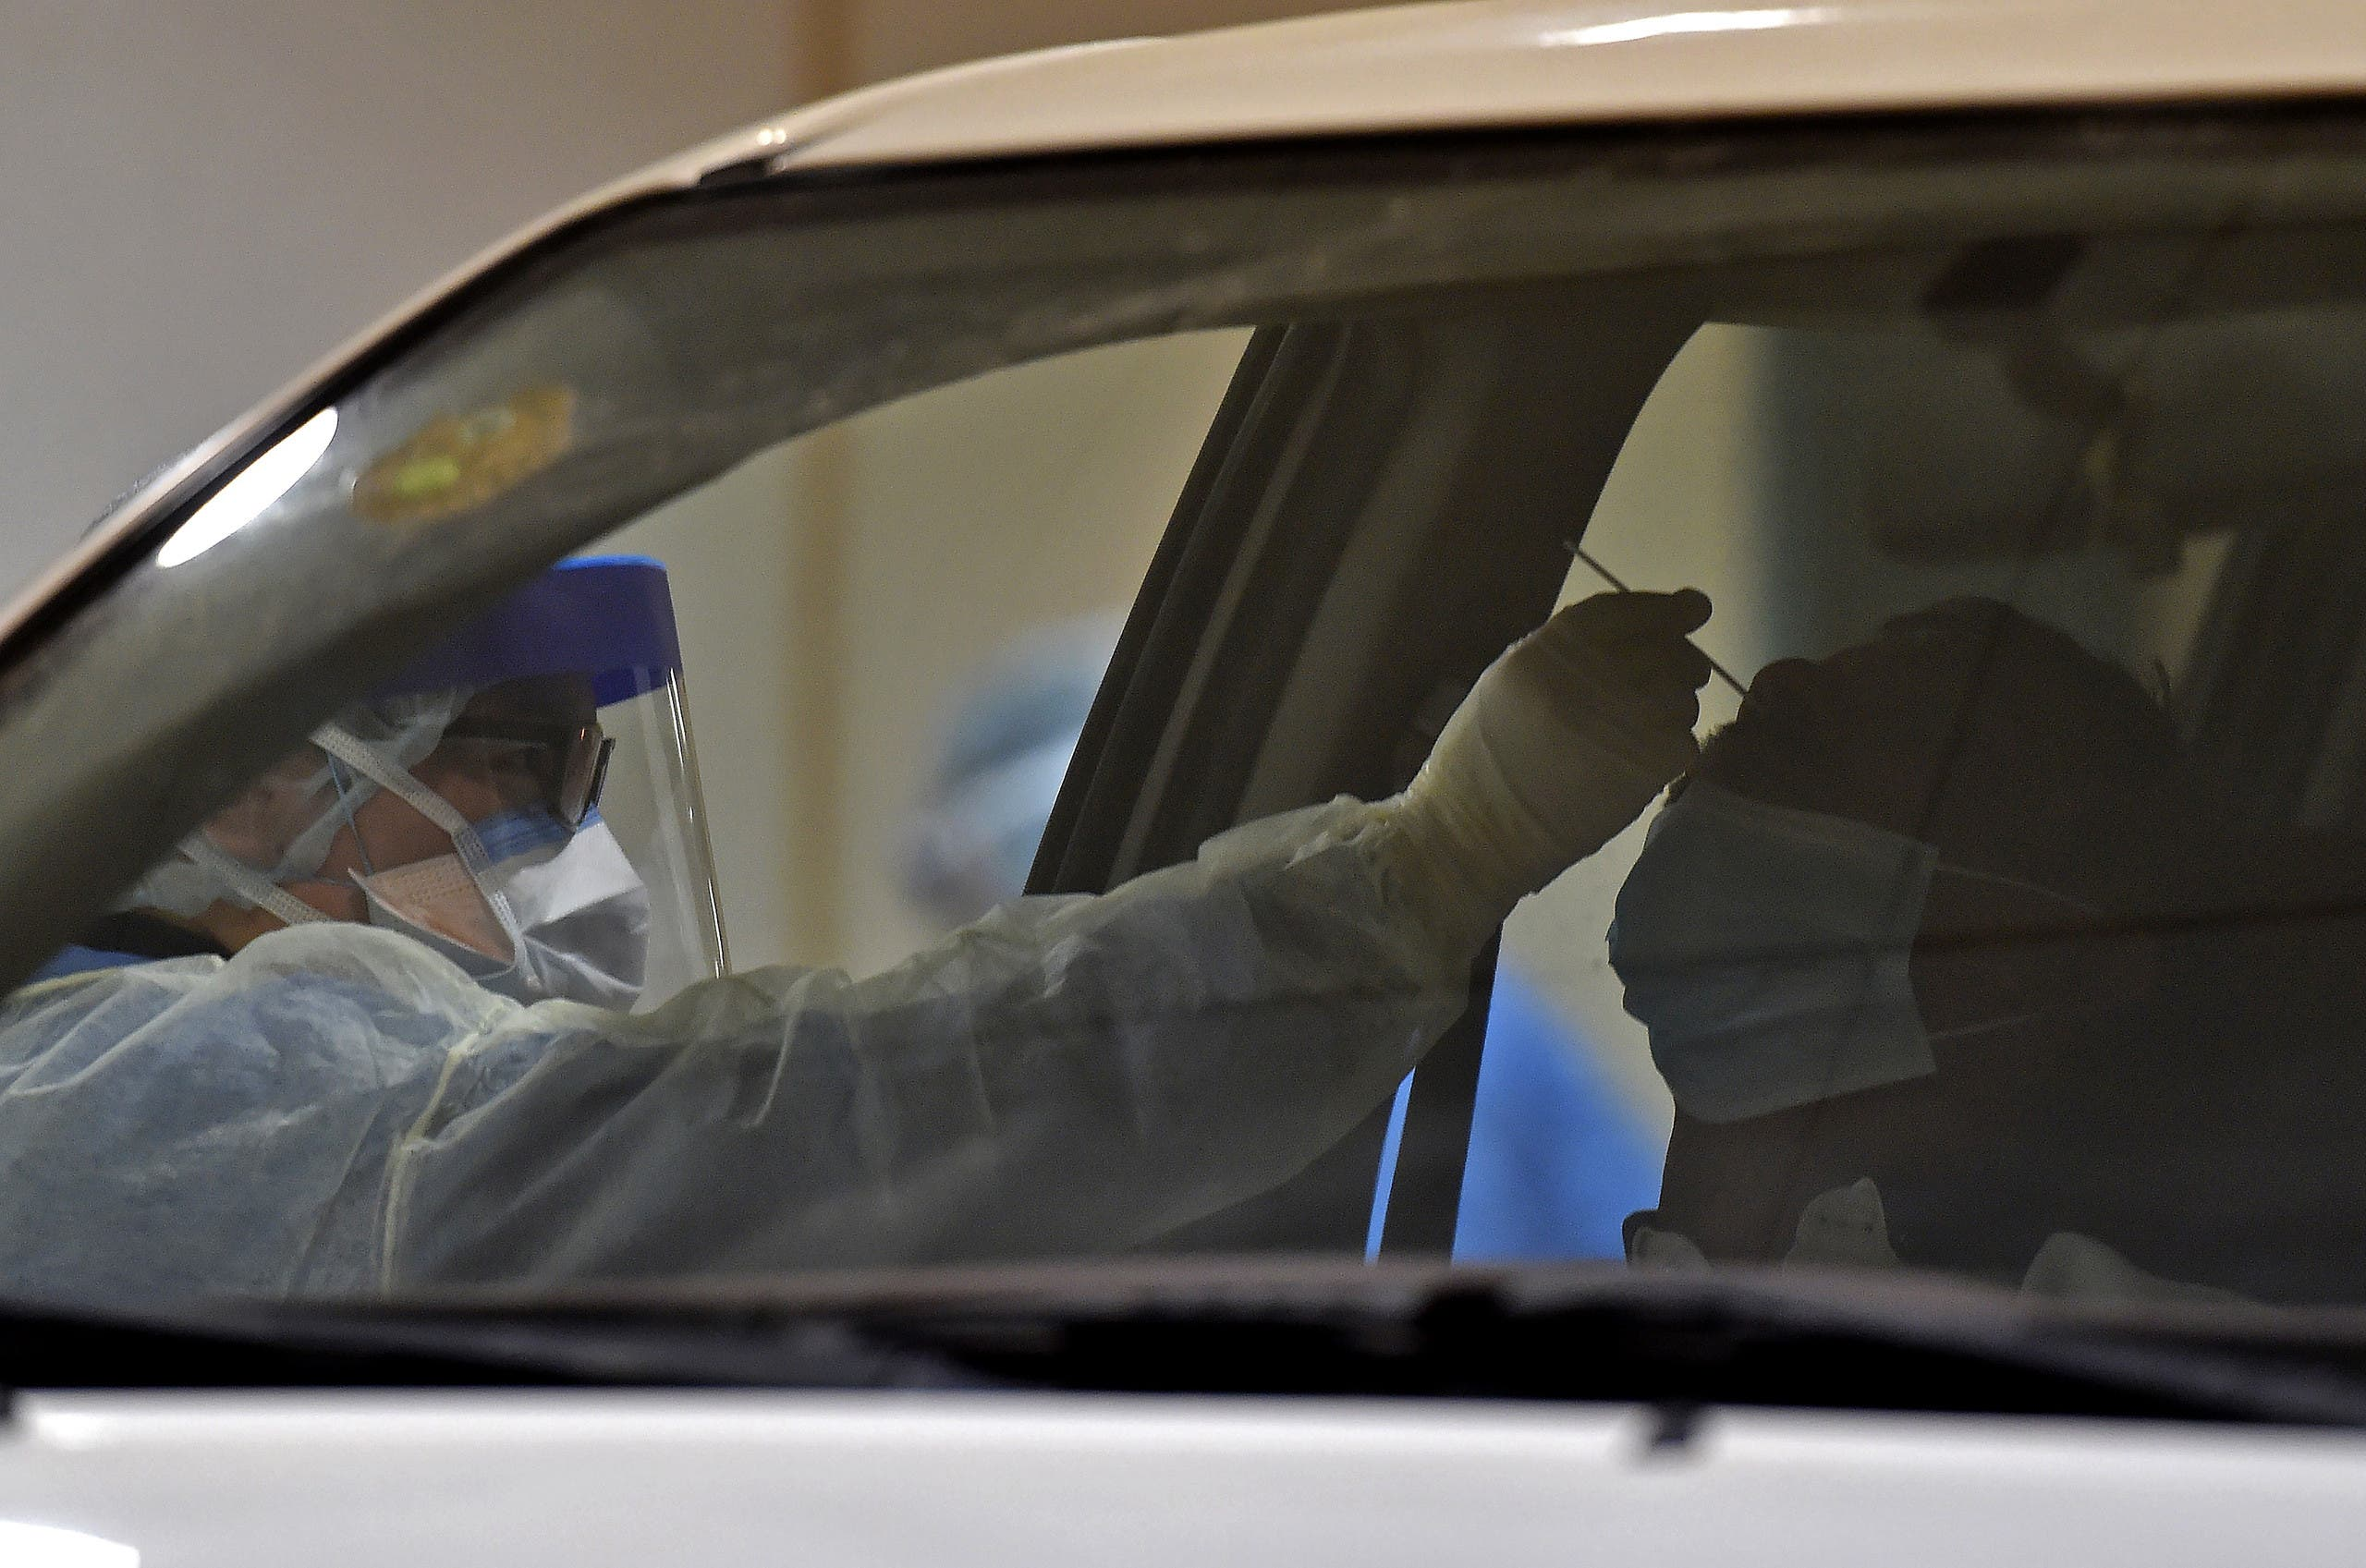 Health workers perform a nose swab test during a drive through coronavirus test campaign held in Diriyah hospital in the Saudi capital Riyadh. (File photo: AFP)